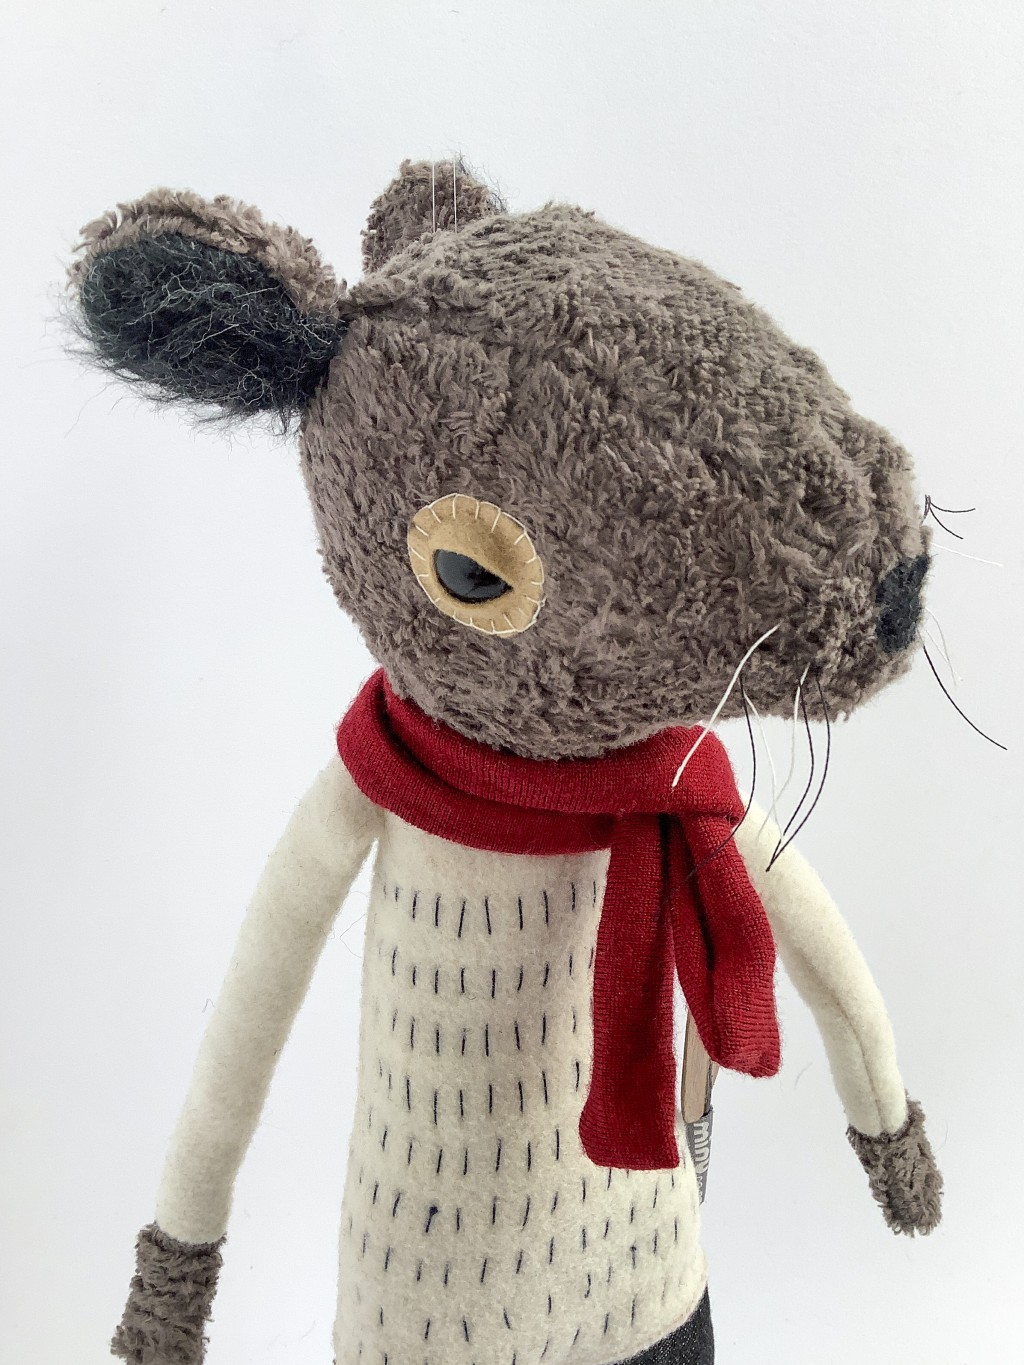 Ratty, Wind in the Willows - plush sculptures by minu